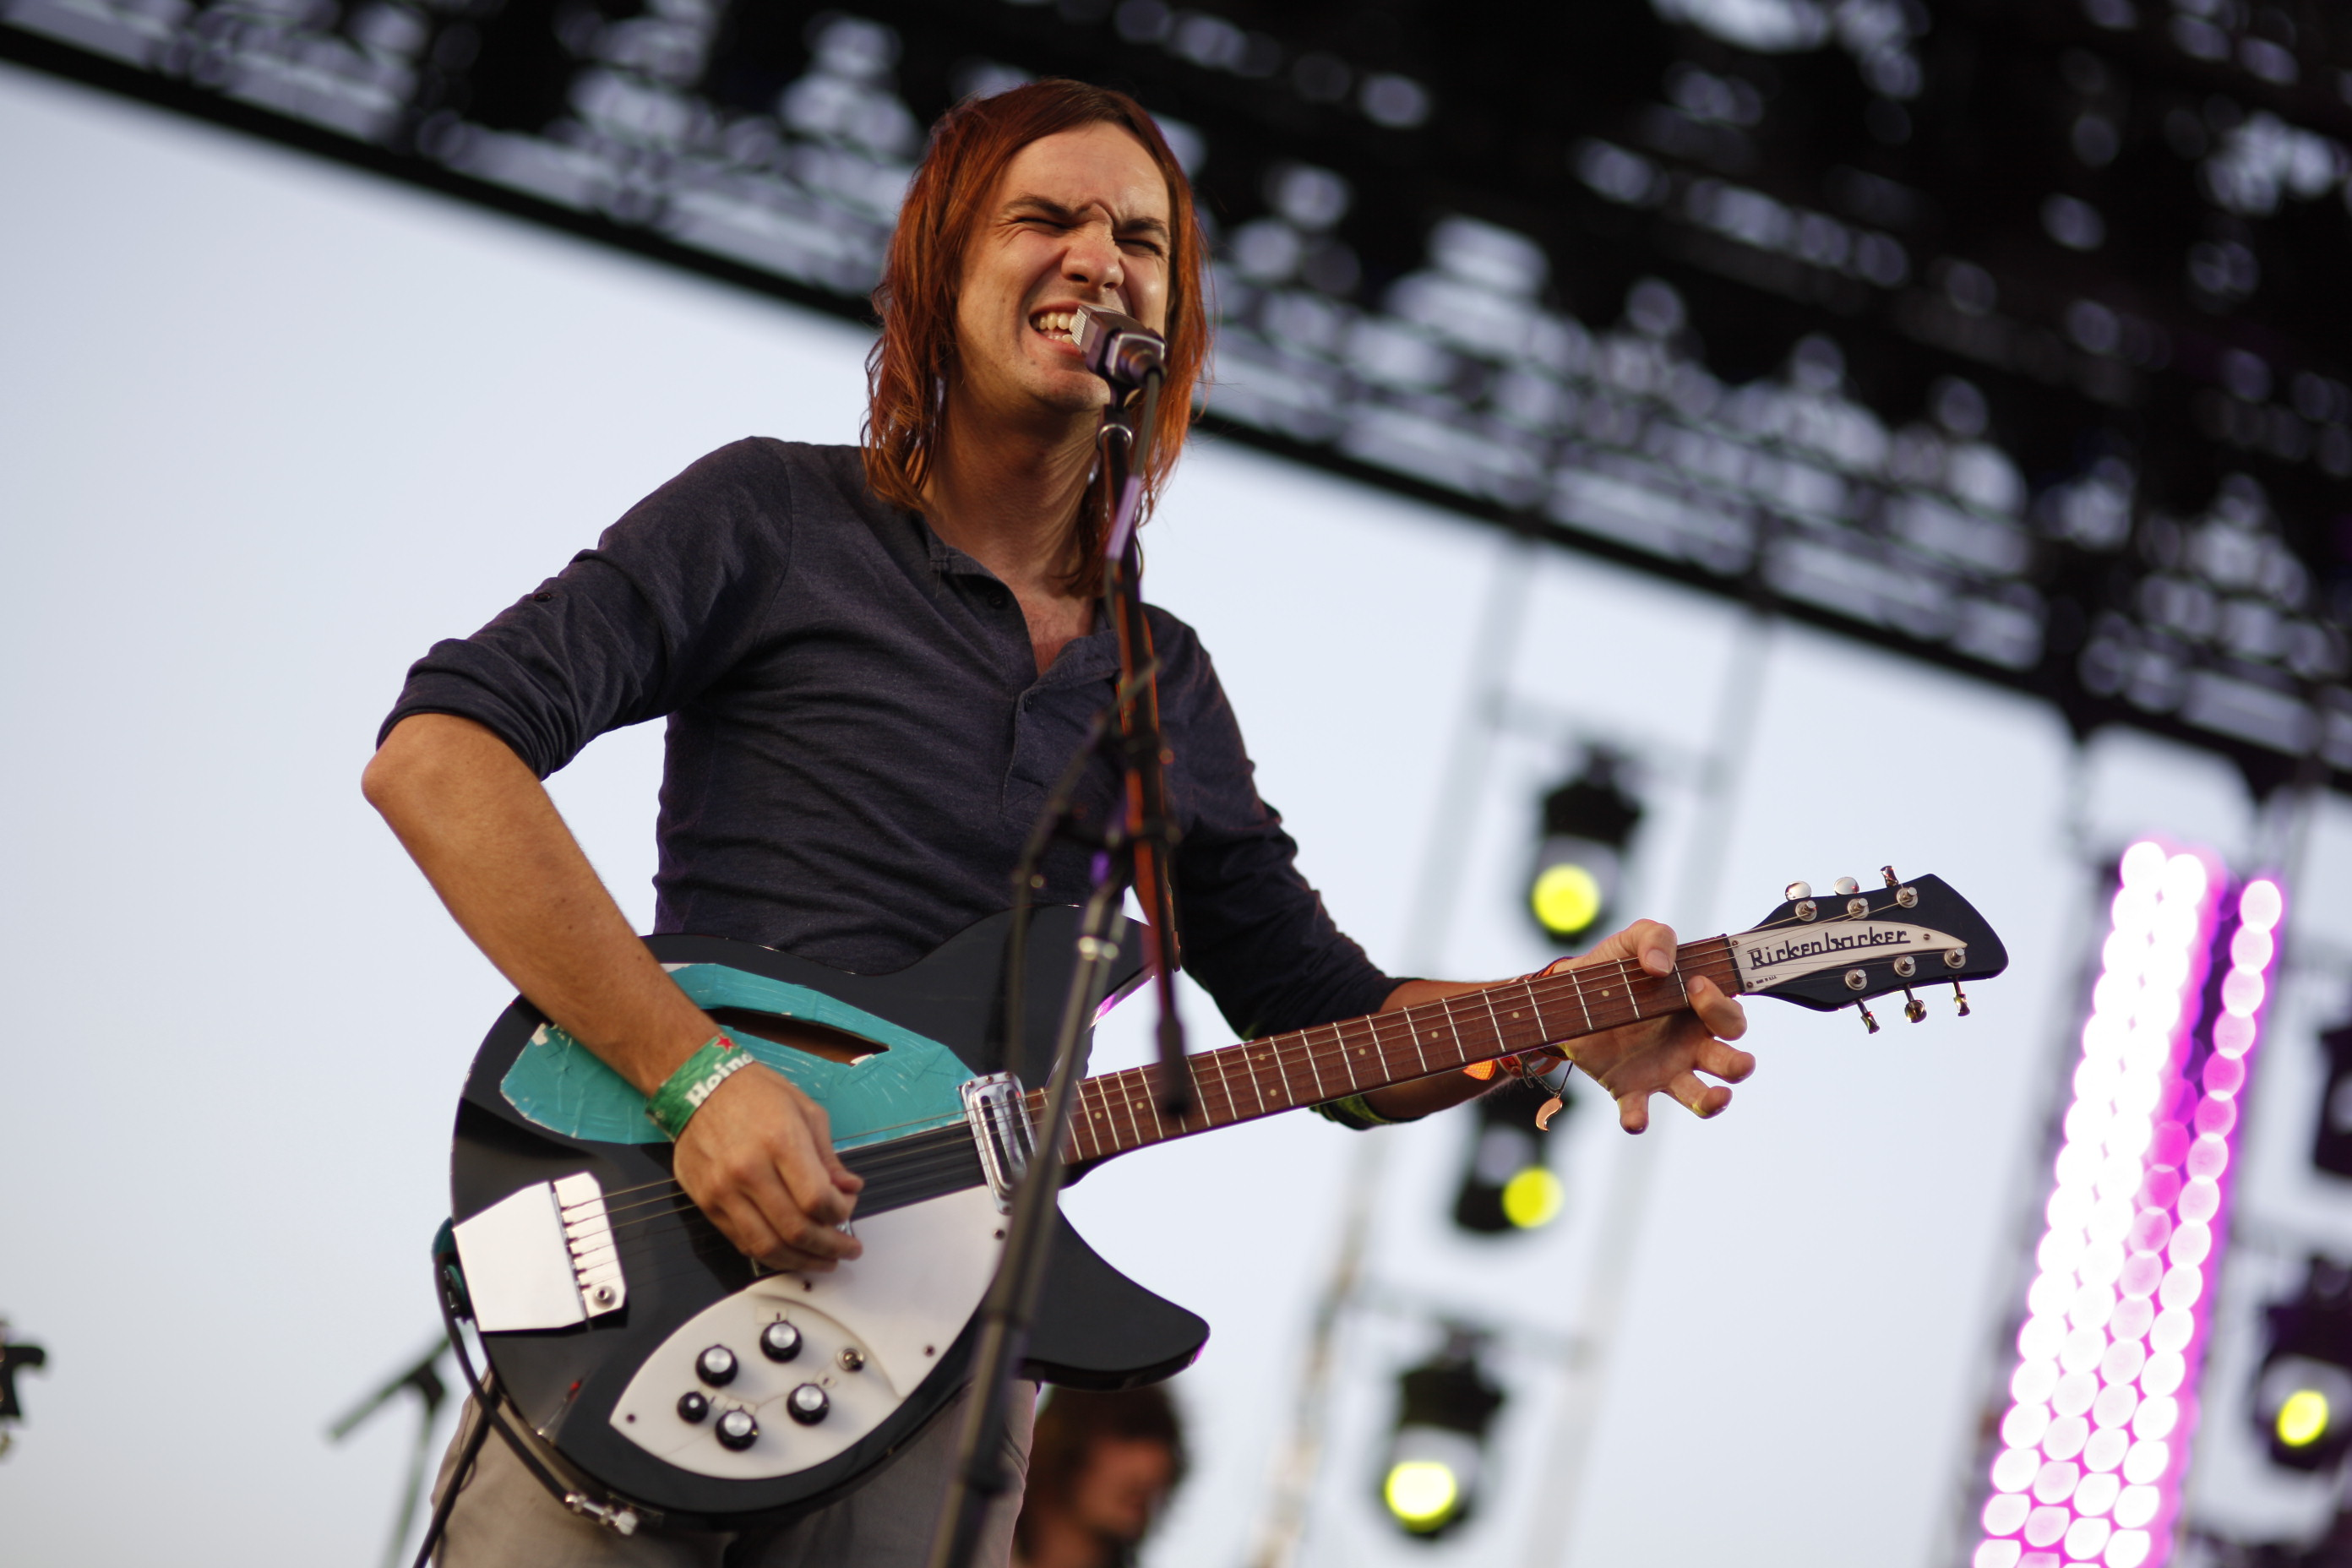 Coachella 2019 Day Two Weekend One Review - Tame Impala Provides Solid If By-The-Numbers Headlining Set as Maggie Rogers and Billie Eilish Impress In Festival Debuts